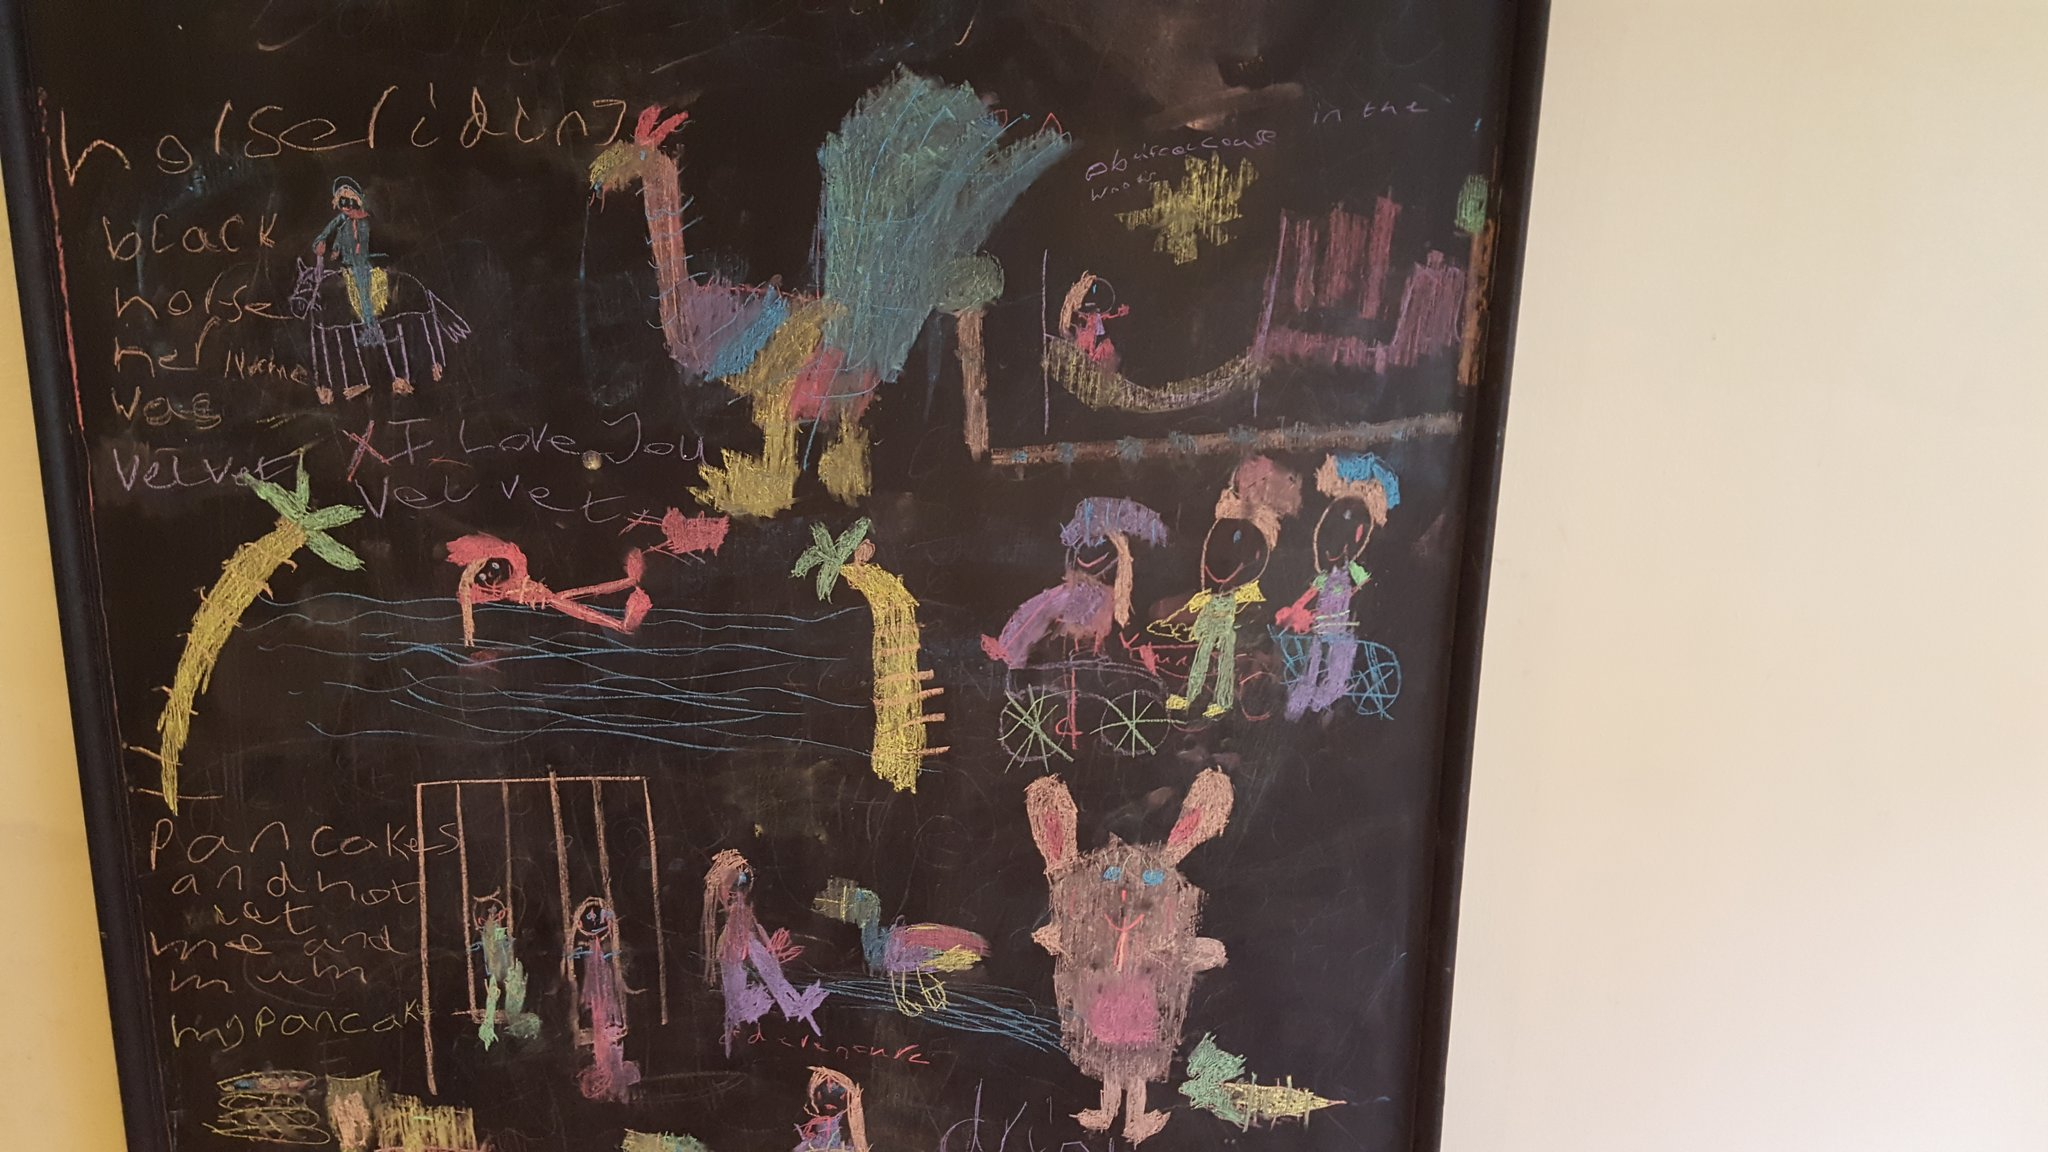 #justimagine @CenterParcsUK My fun filled weekend at Whinfell Forest by Niamh age 6 https://t.co/iatoze4fhE